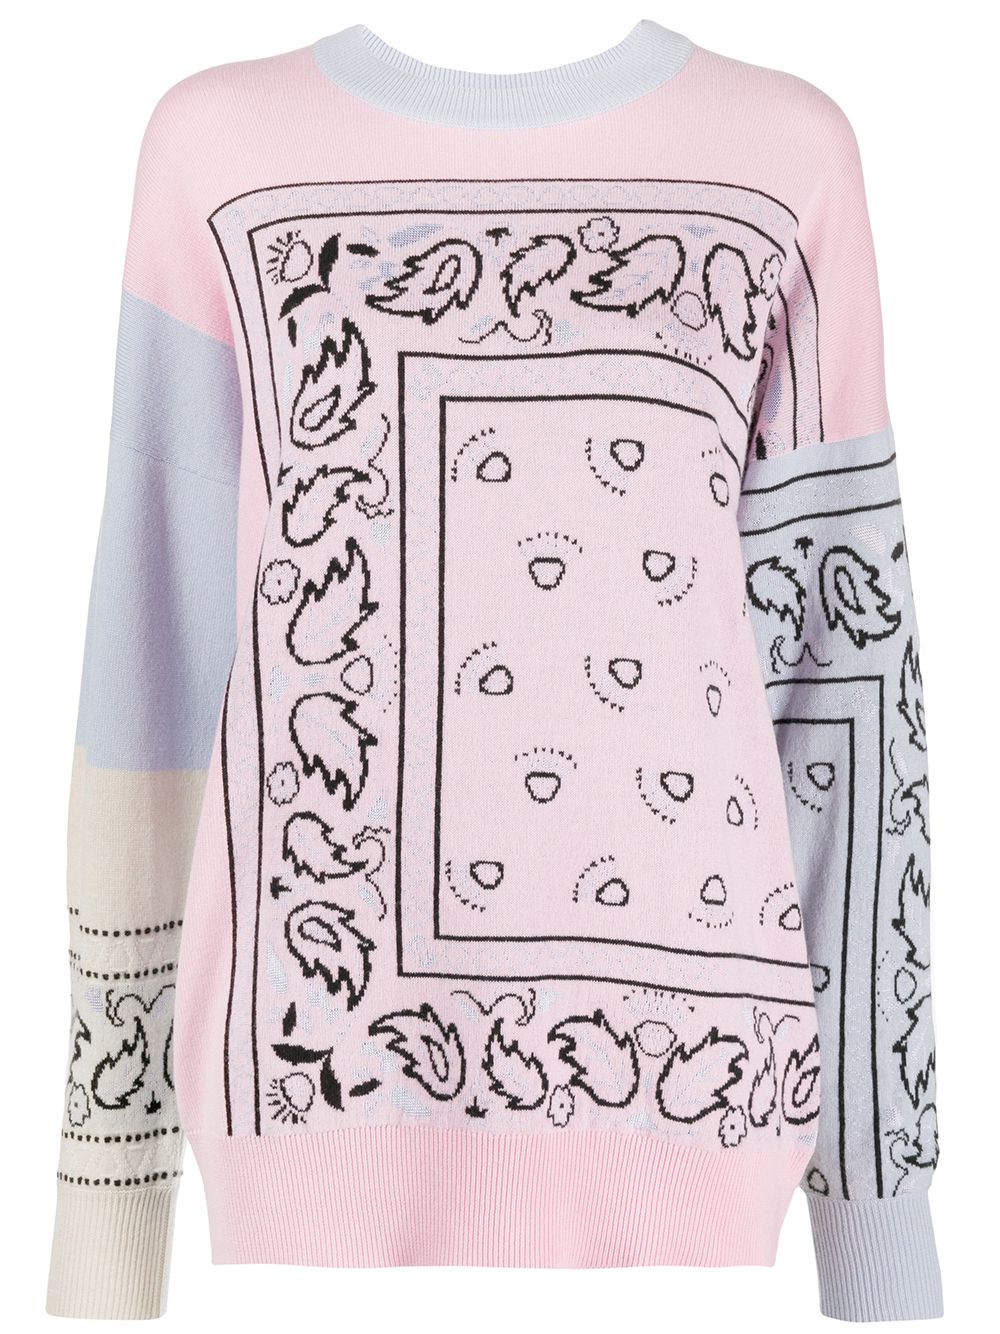 Barrie Pullover mit Bandana-Muster - Rosa